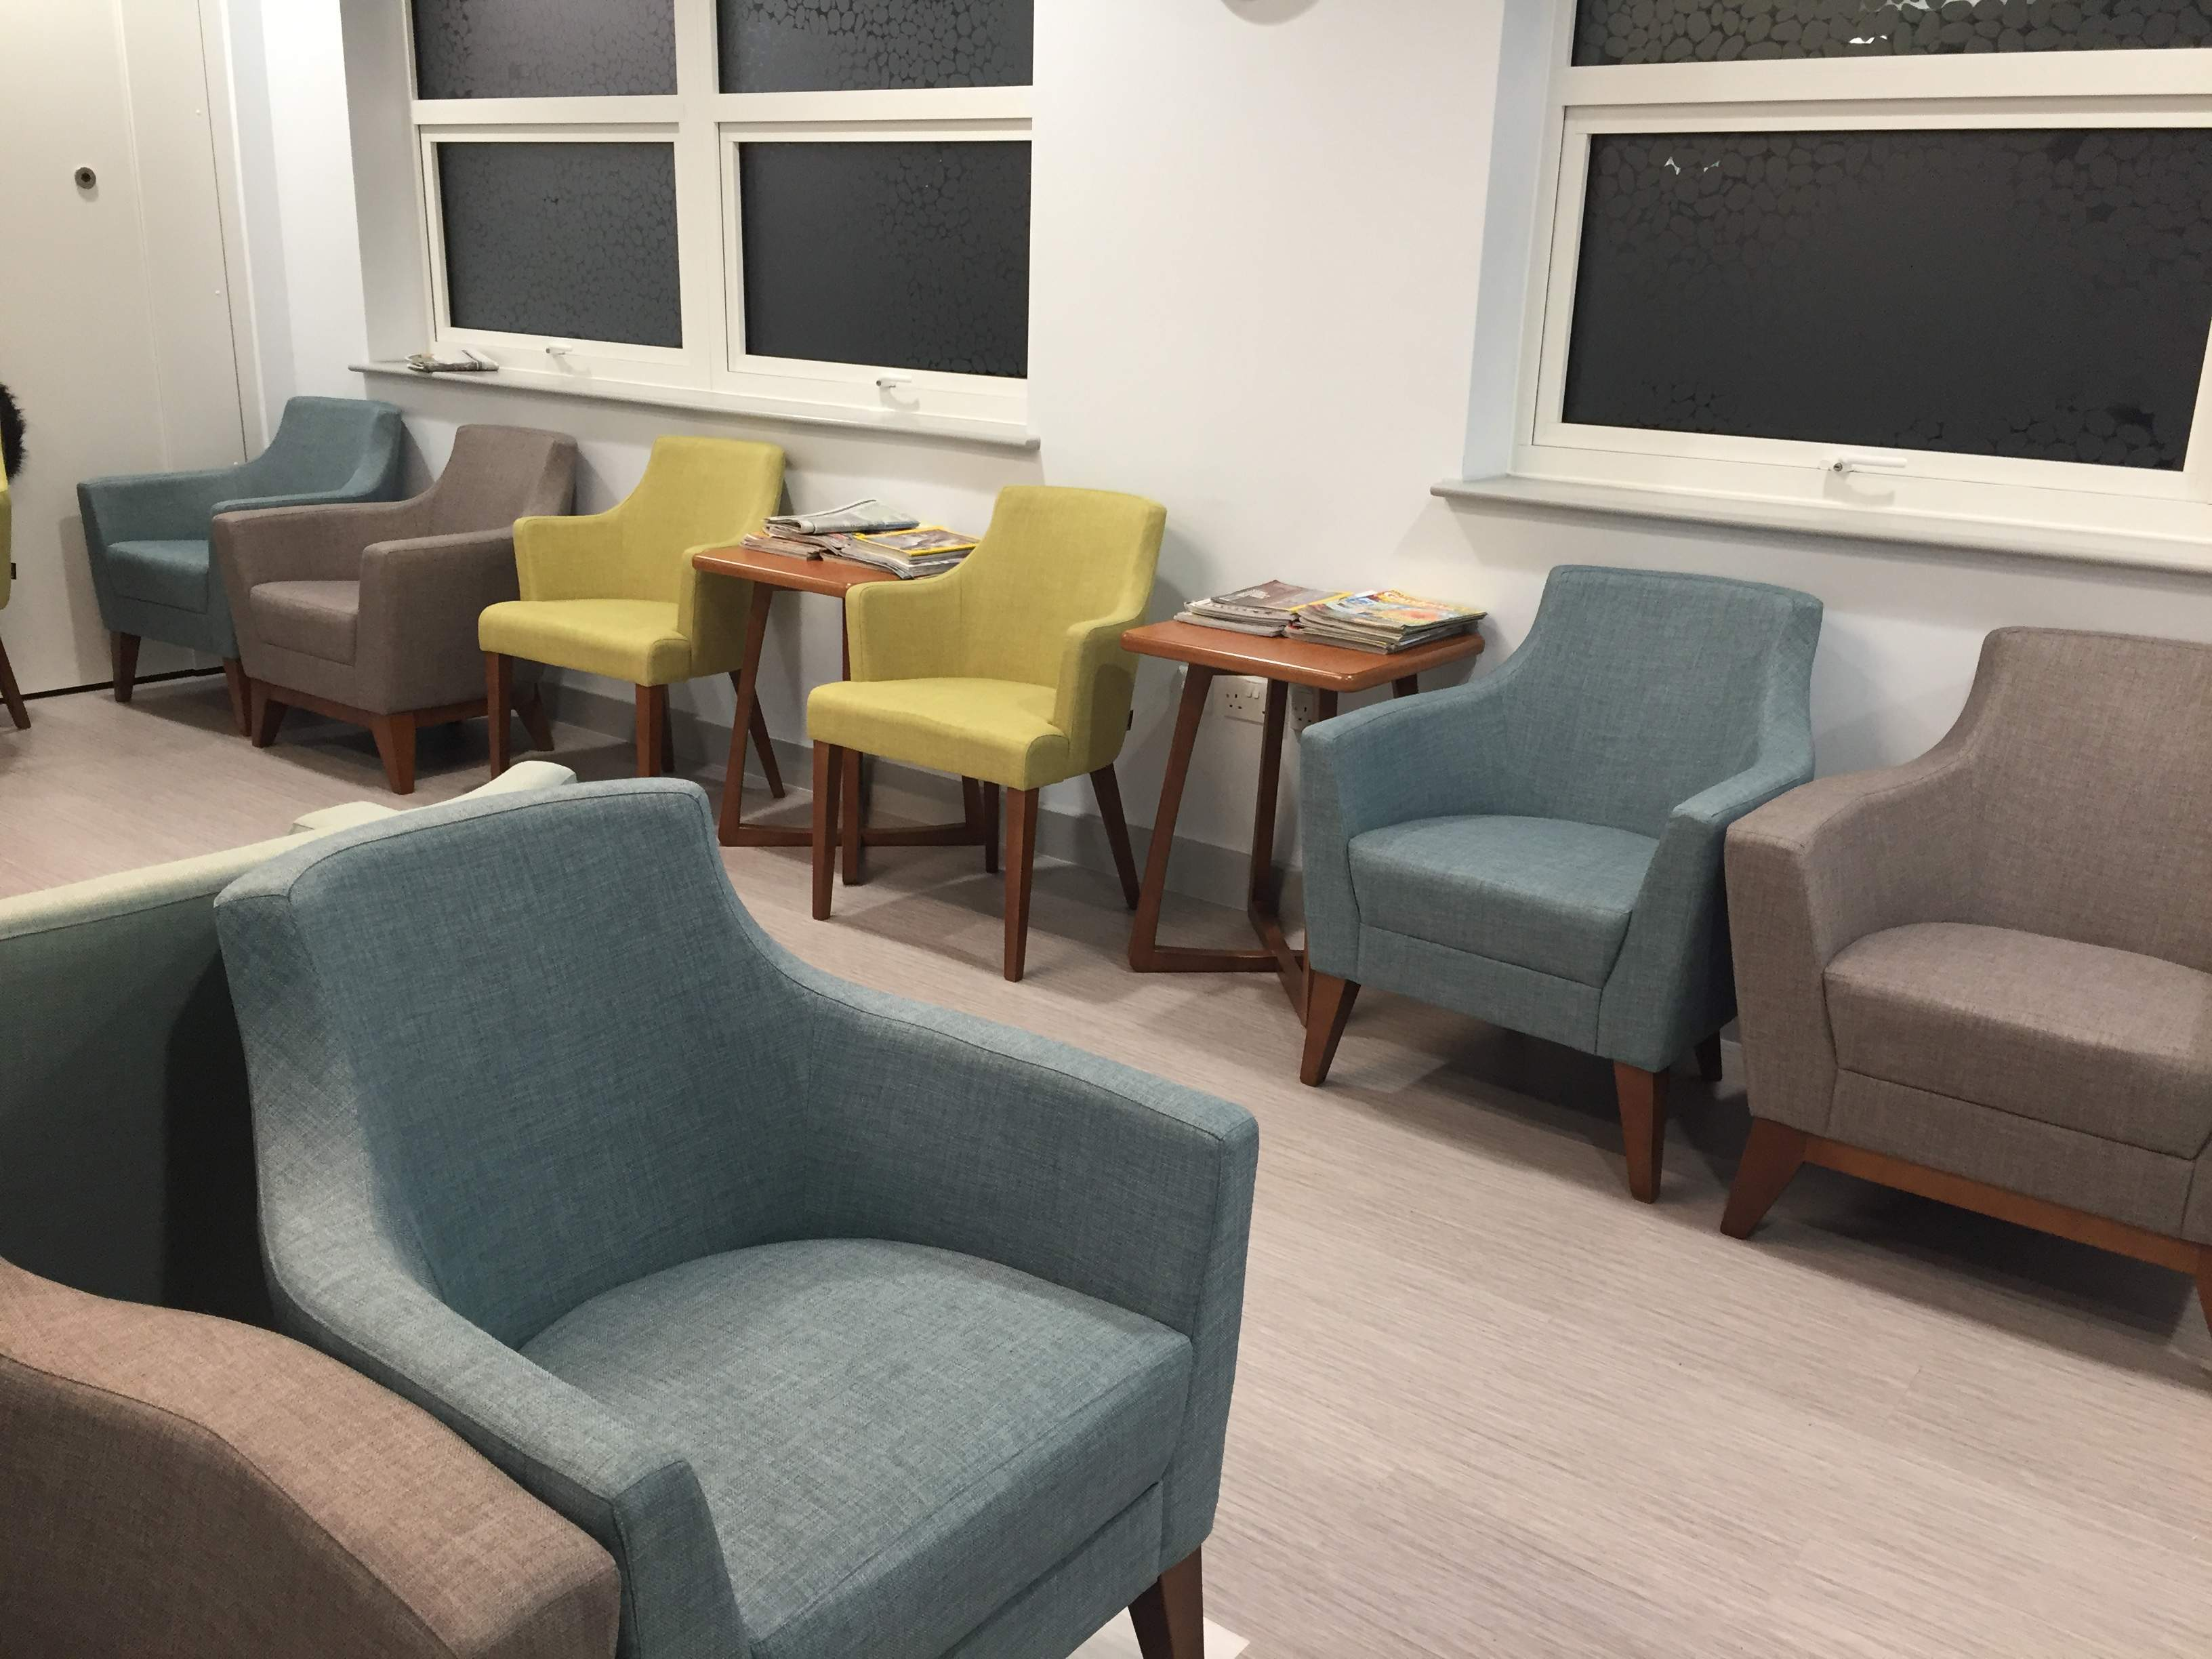 Furniture in radiotherapy reception